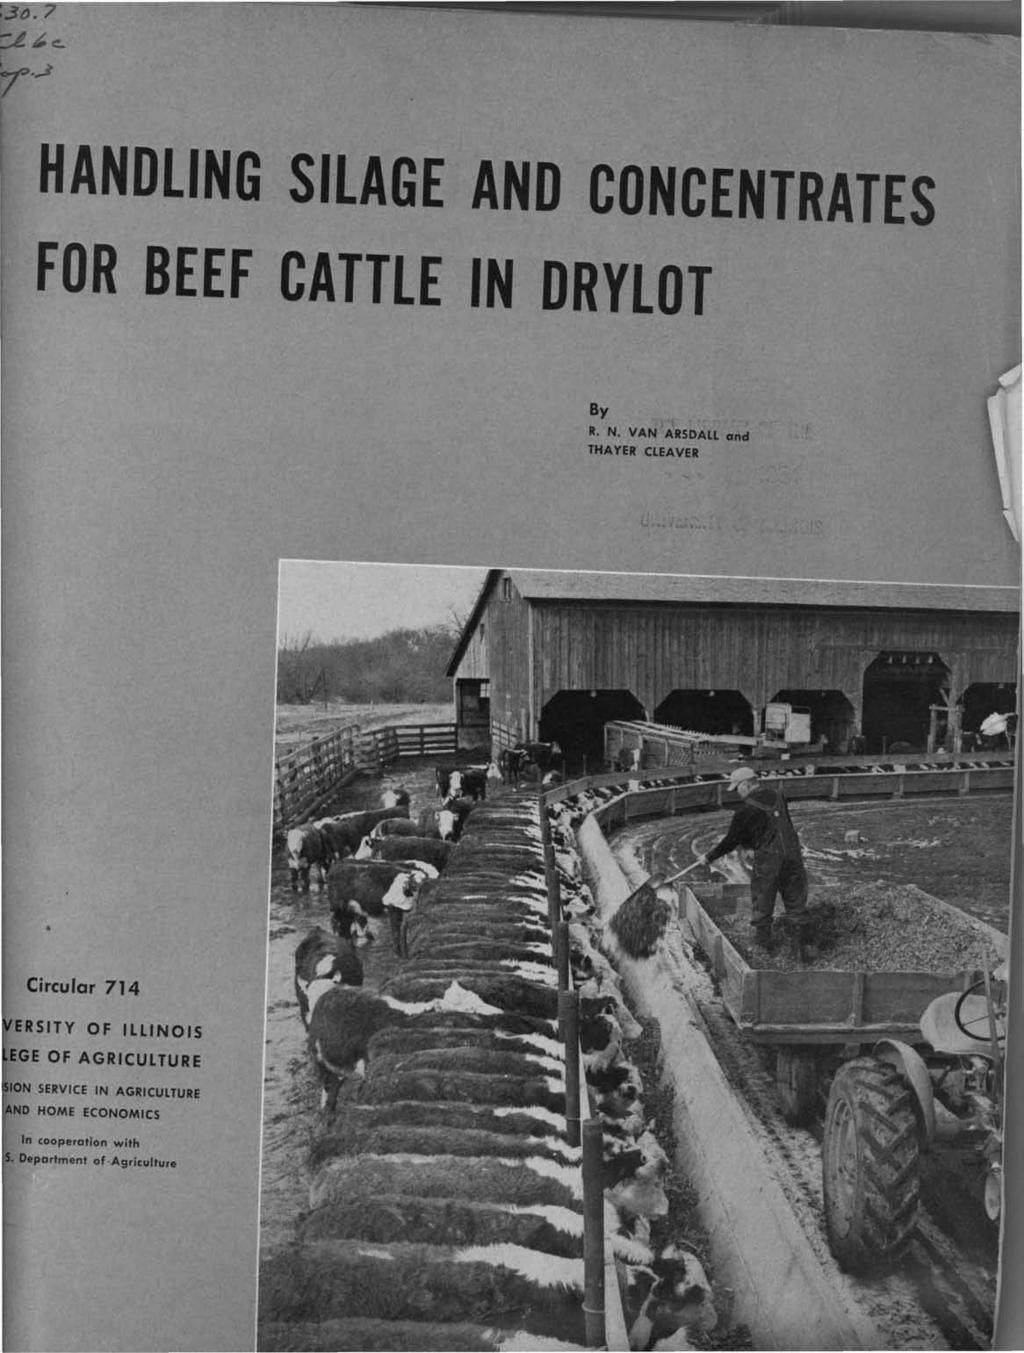 /.J HANDLING SILAGE AND CONCENTRATES FOR BEEF CATTLE IN DRYLOT By R. N.